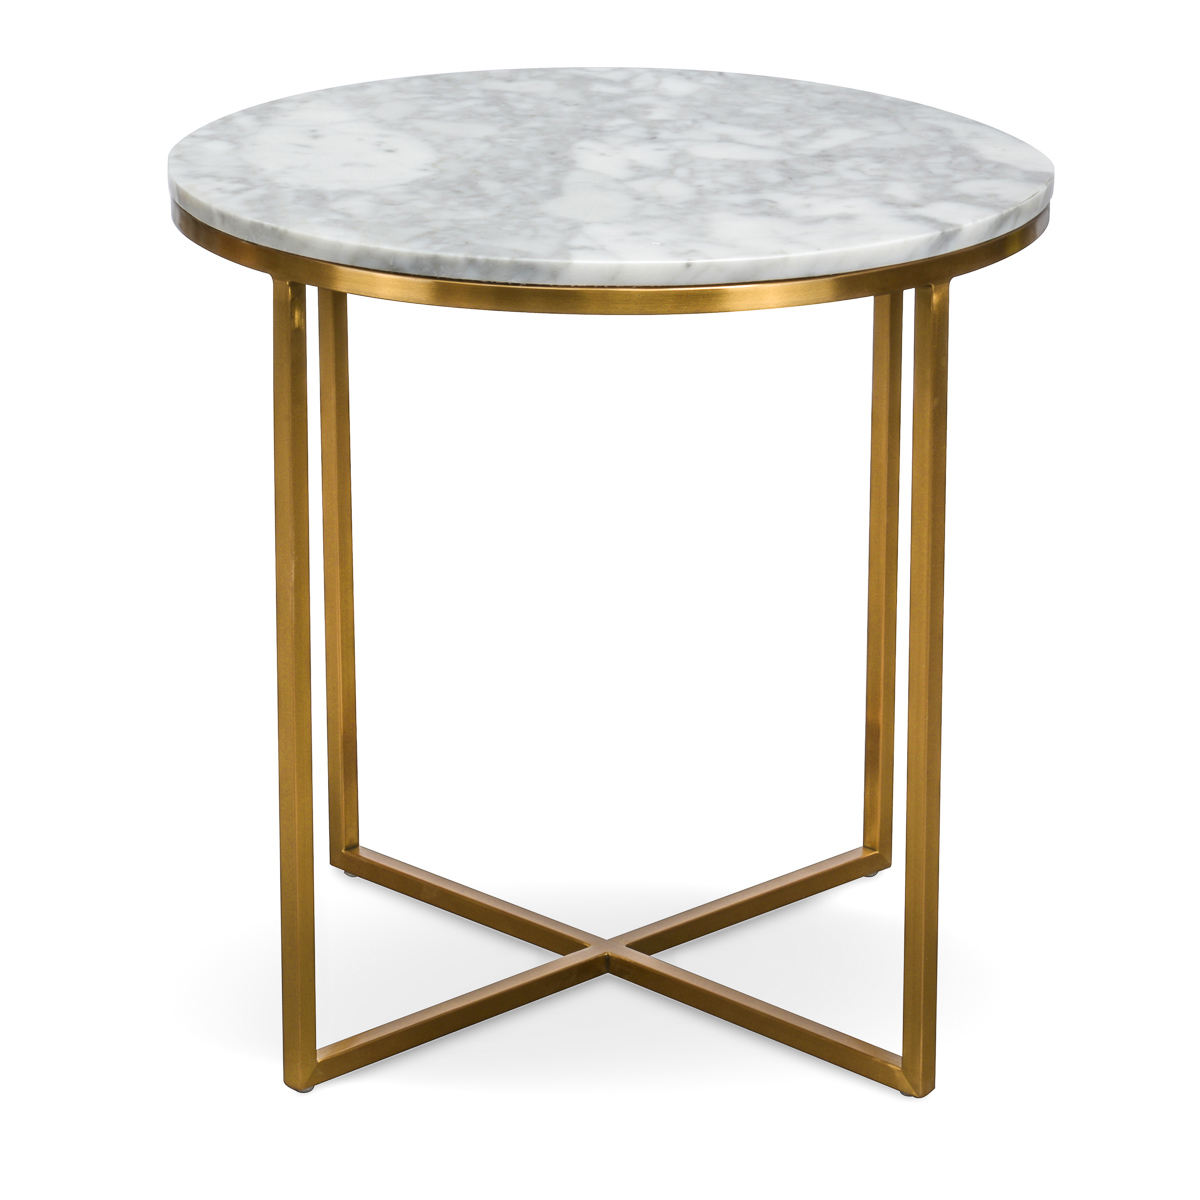 zuo modern end table the super free target black side round glass bedside sevenstonesinc lorenz marble wood decorator small square pedestal ideas interior secrets metal dining